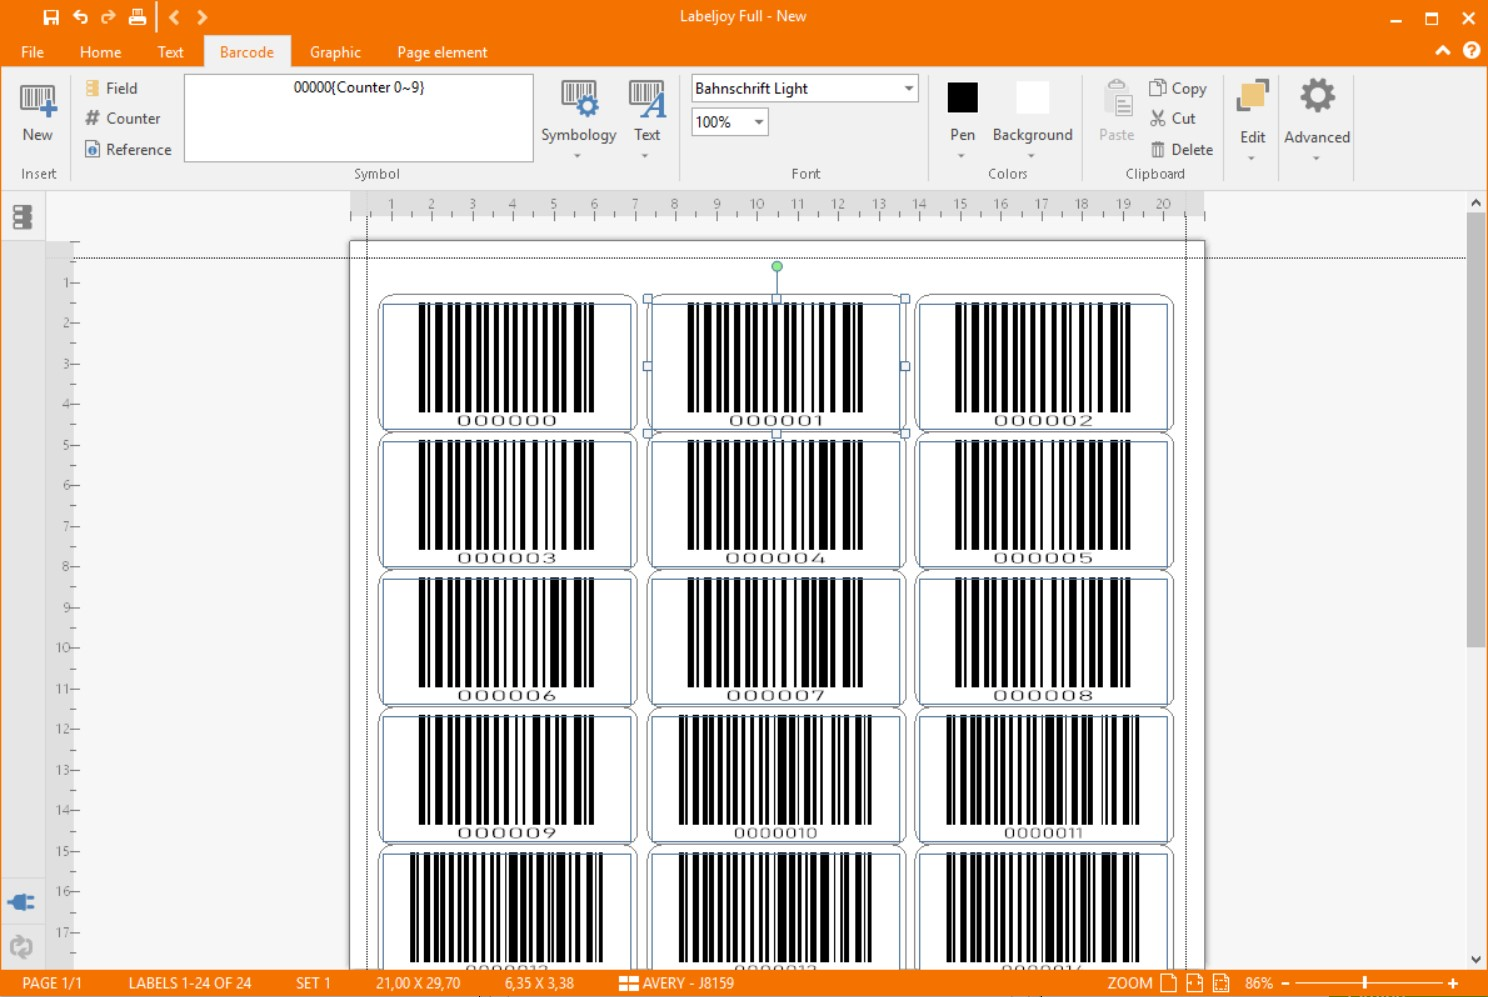 Barcode generated with incremental counter